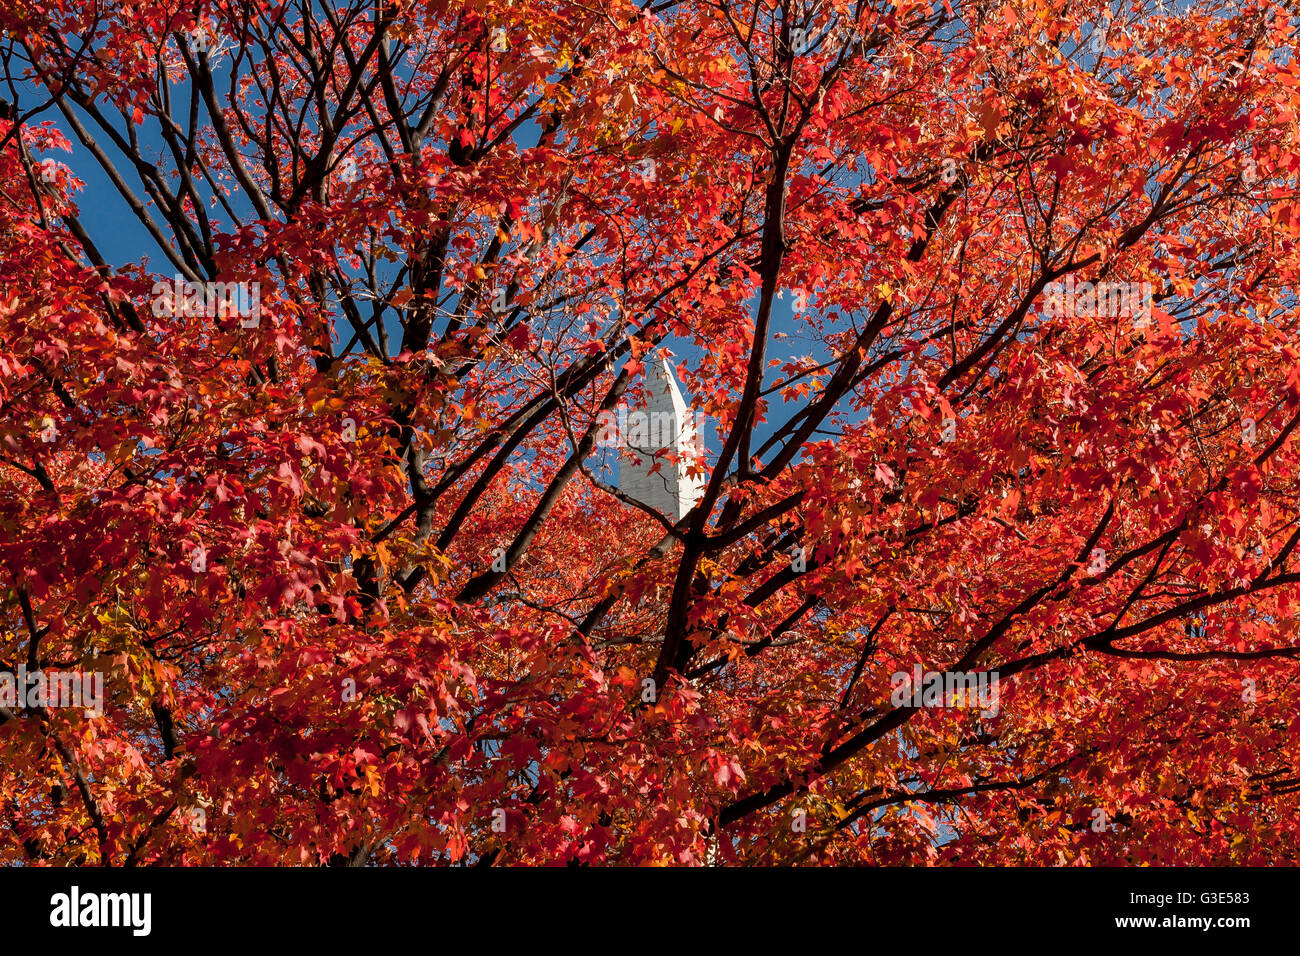 The top of The Washington Monument is just visible through a riot of colour /color  as the leaves turn crimson red - Stock Image